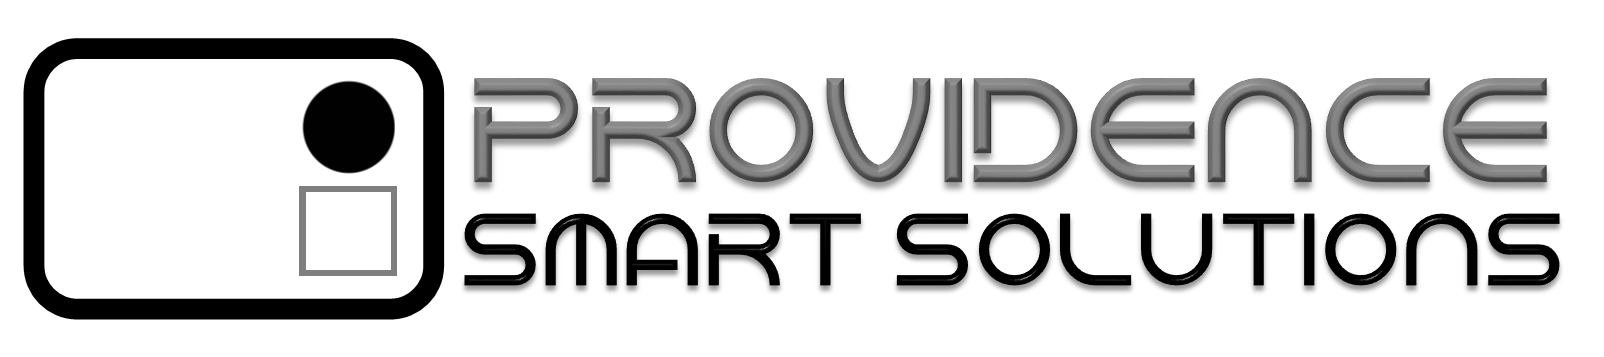 Providence Smart Solutions